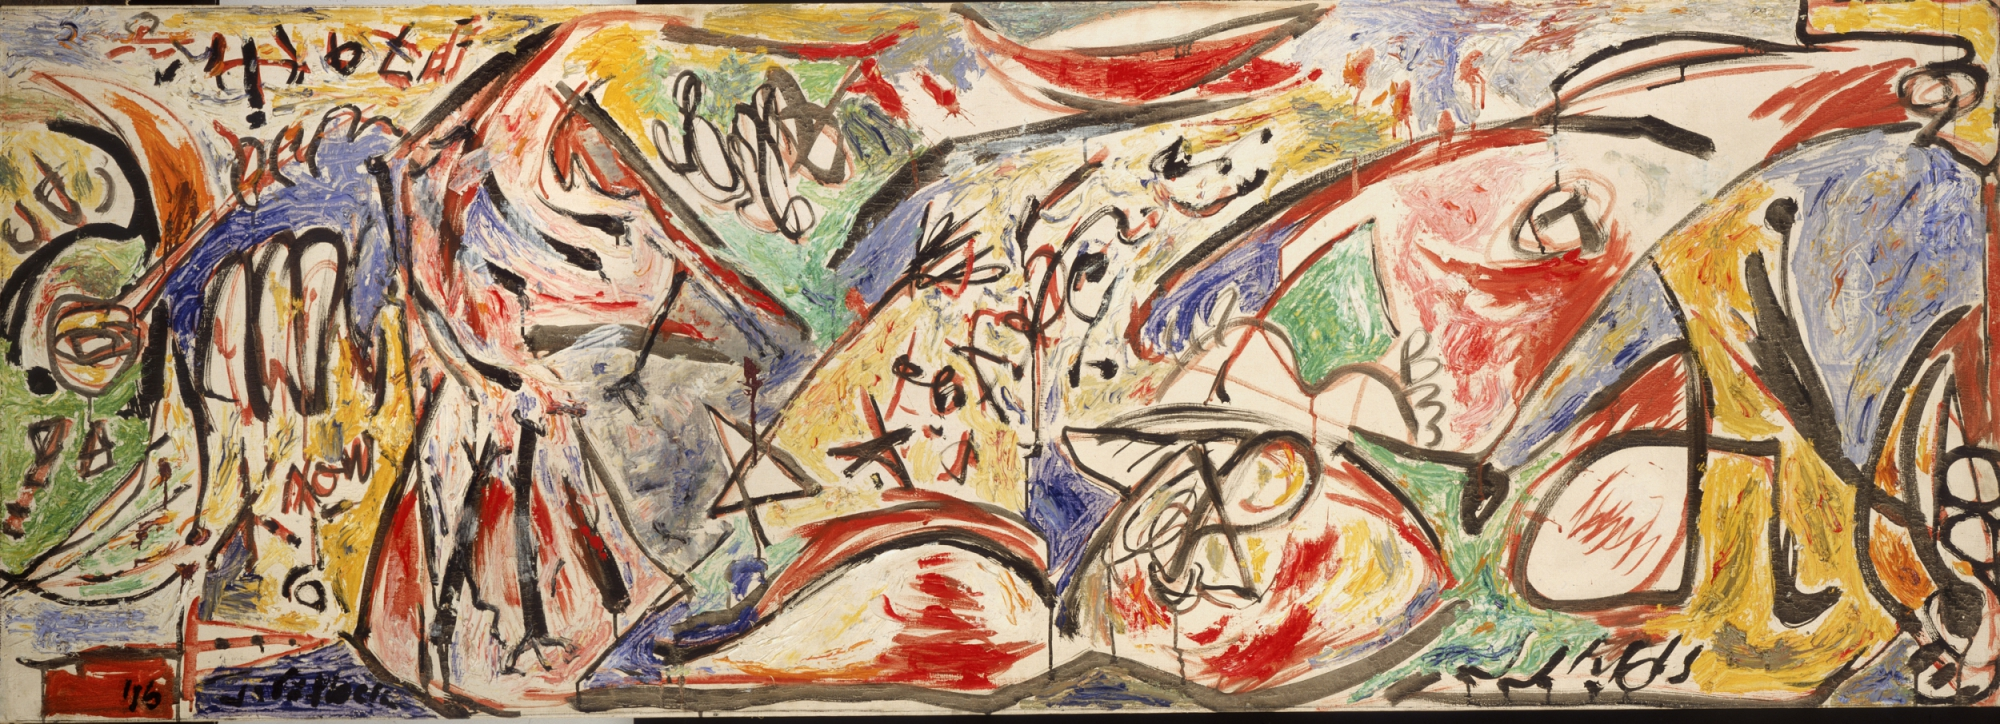 Jackson Pollock (Cody 1912- East Hampton 1956) Bufalo d'acqua (dalla serie Accabonac Creek) (The Water Bull from the Accabonac Creek series) 1946